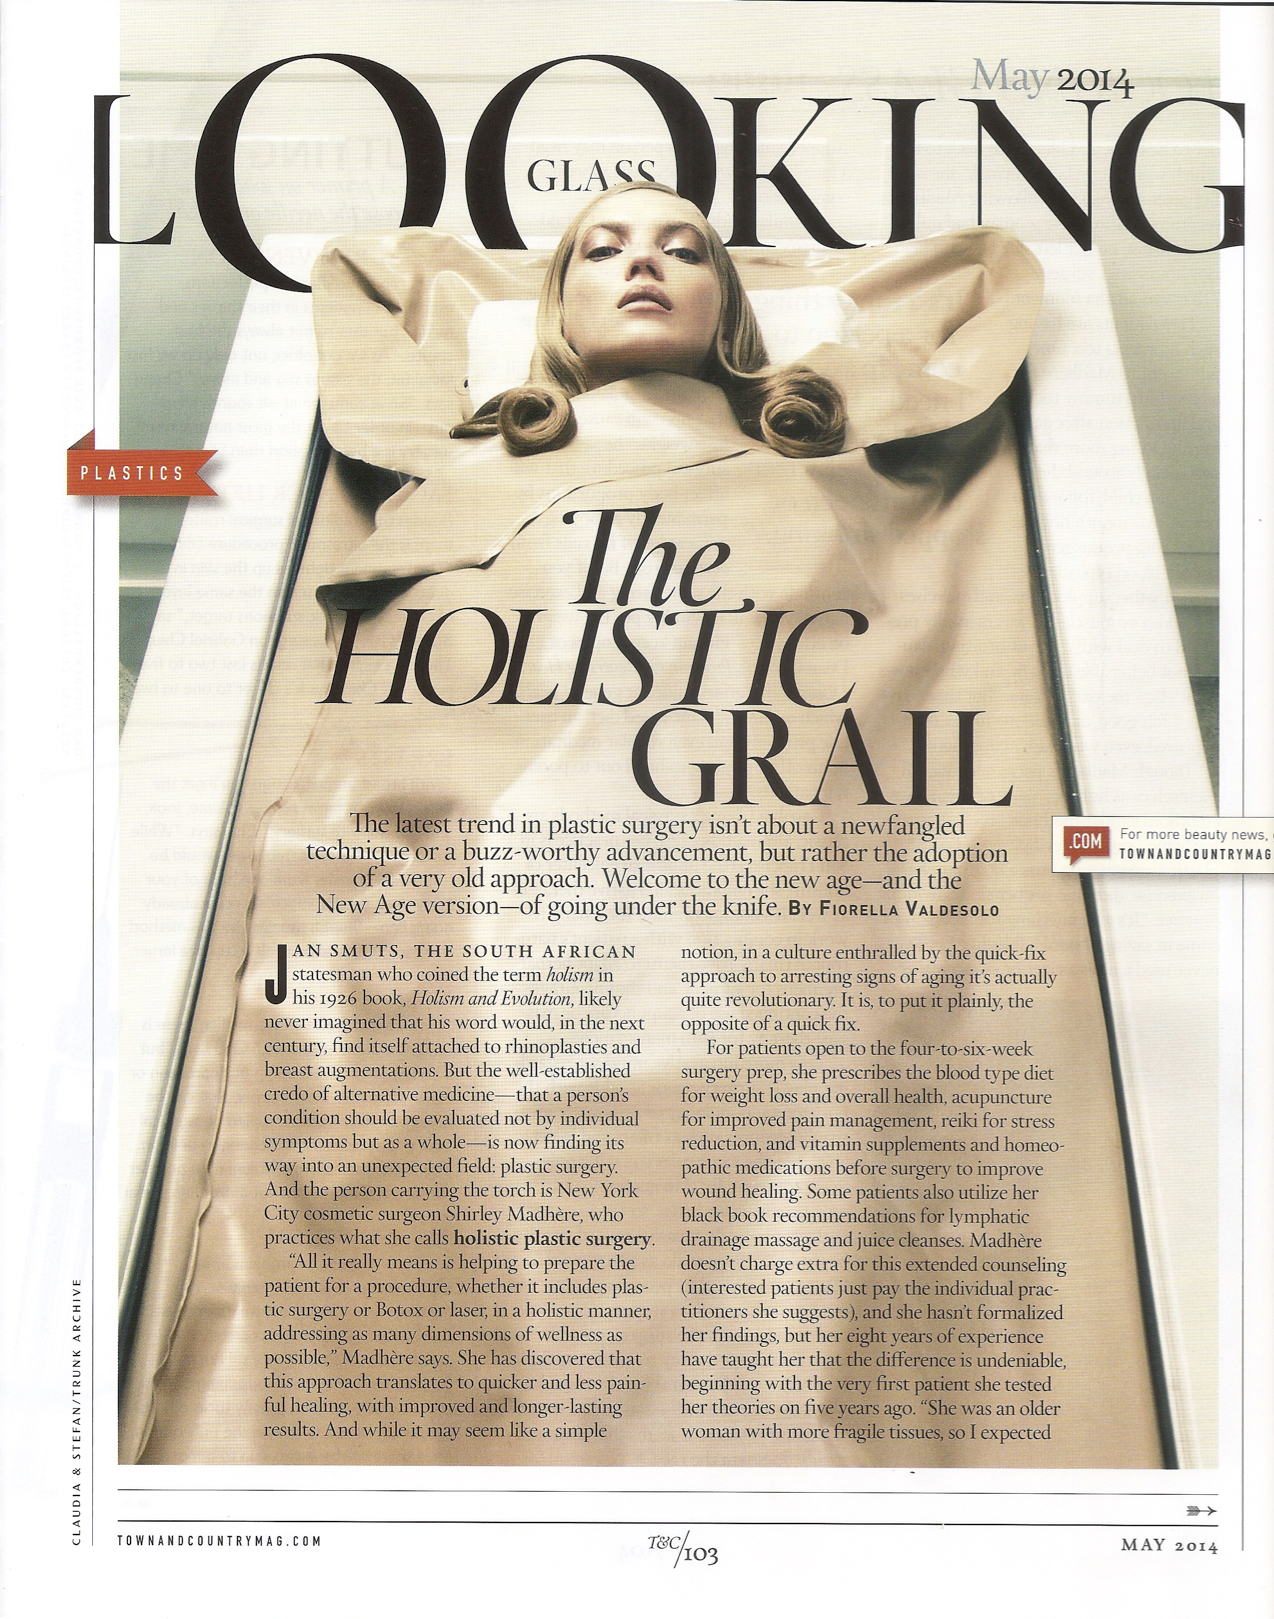 Town & Country- The Holistic Grail May 2014 pg 1.jpg